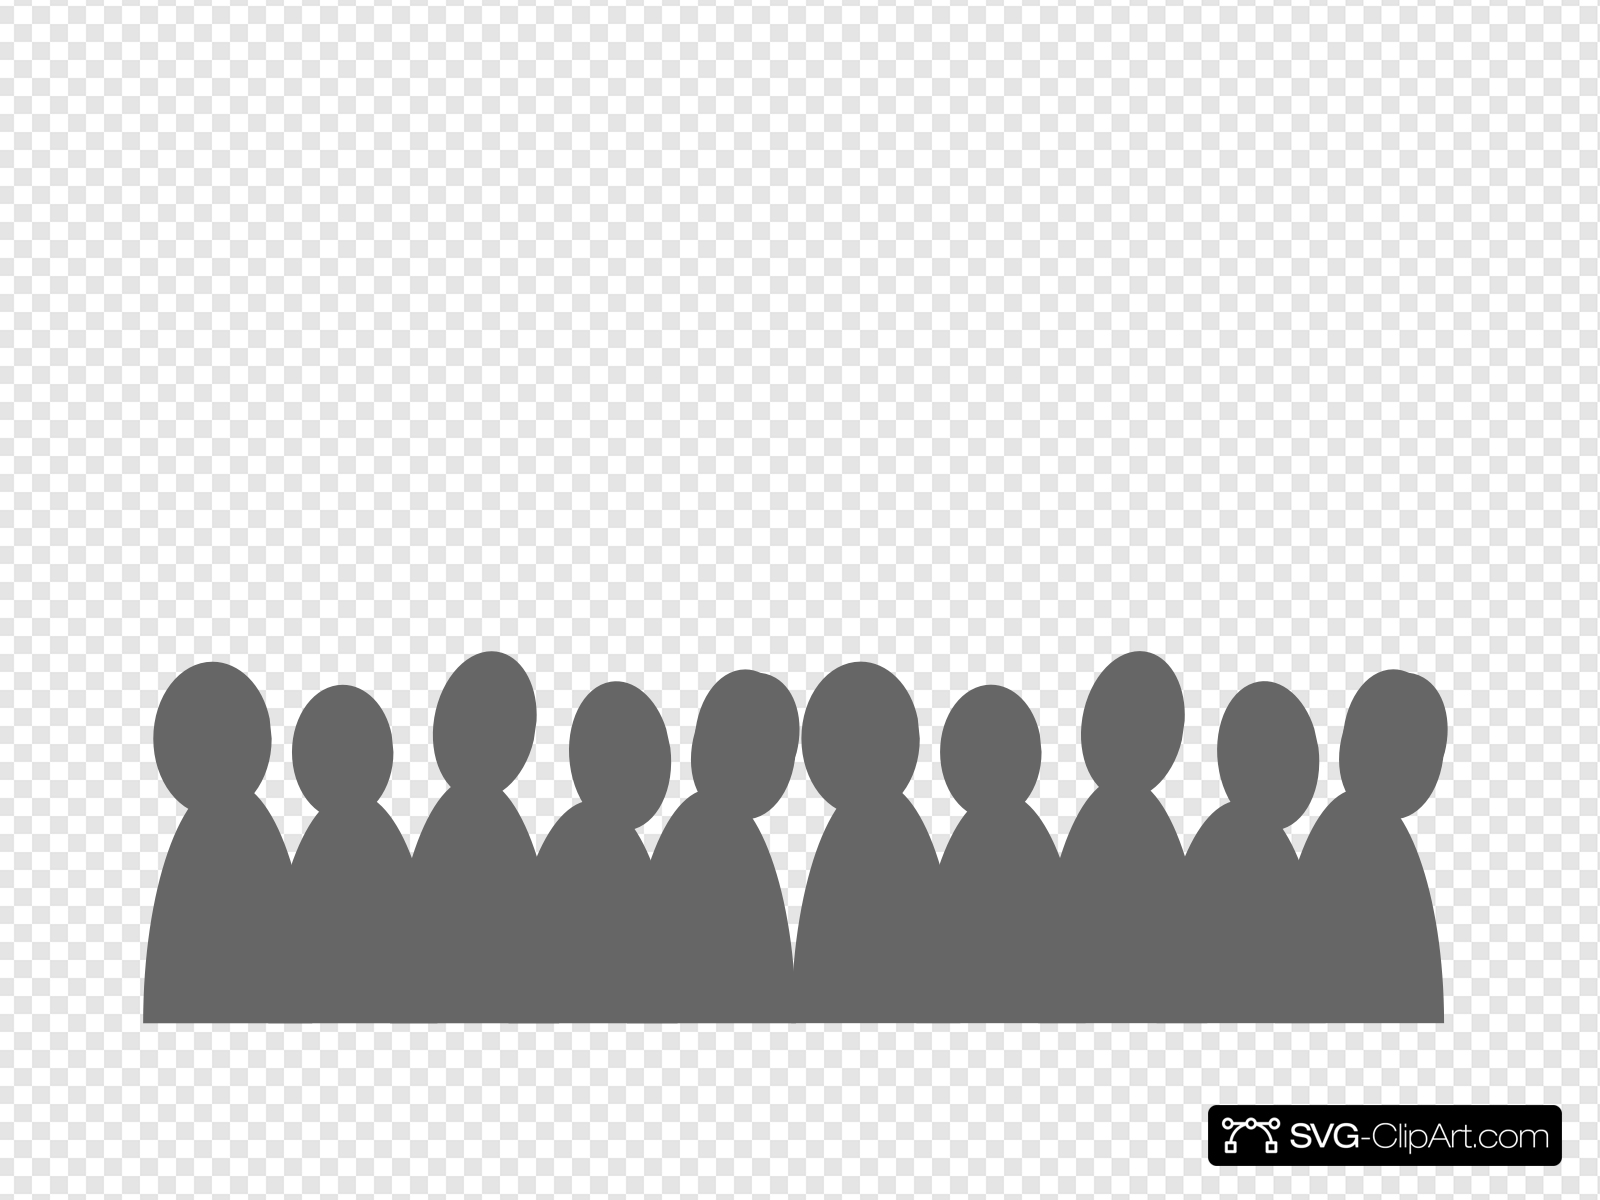 Crowd Clipart Grey Crowd Grey Transparent Free For